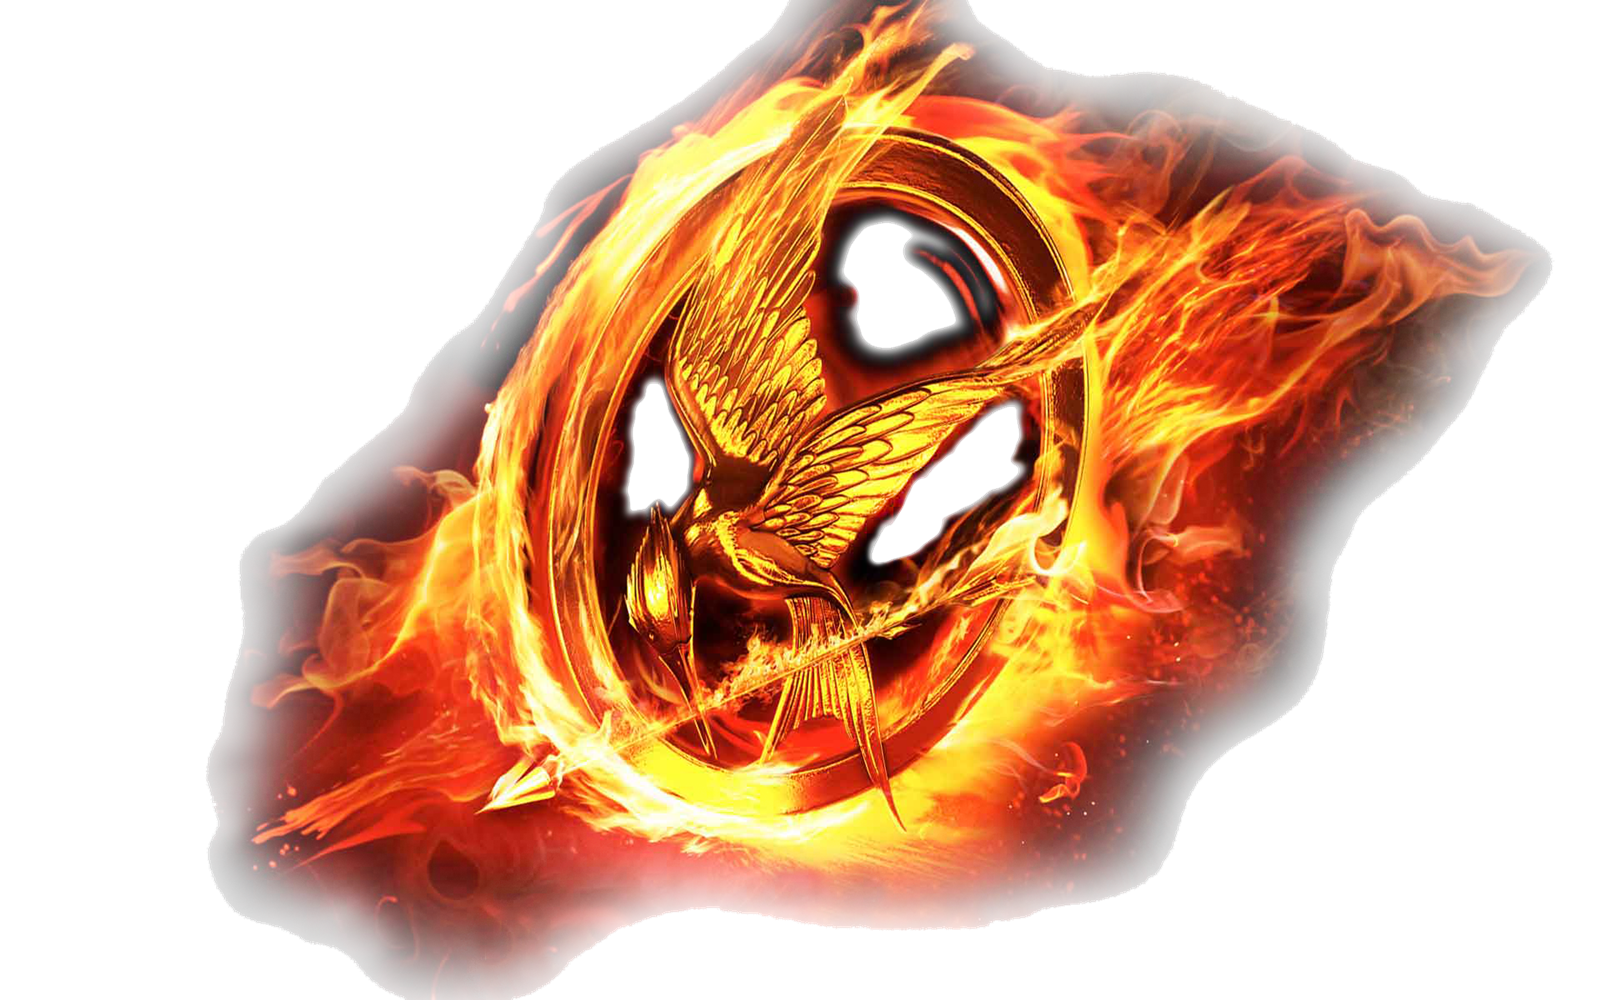 Download the hunger games png pic hq png image freepngimg the hunger games png pic biocorpaavc Choice Image